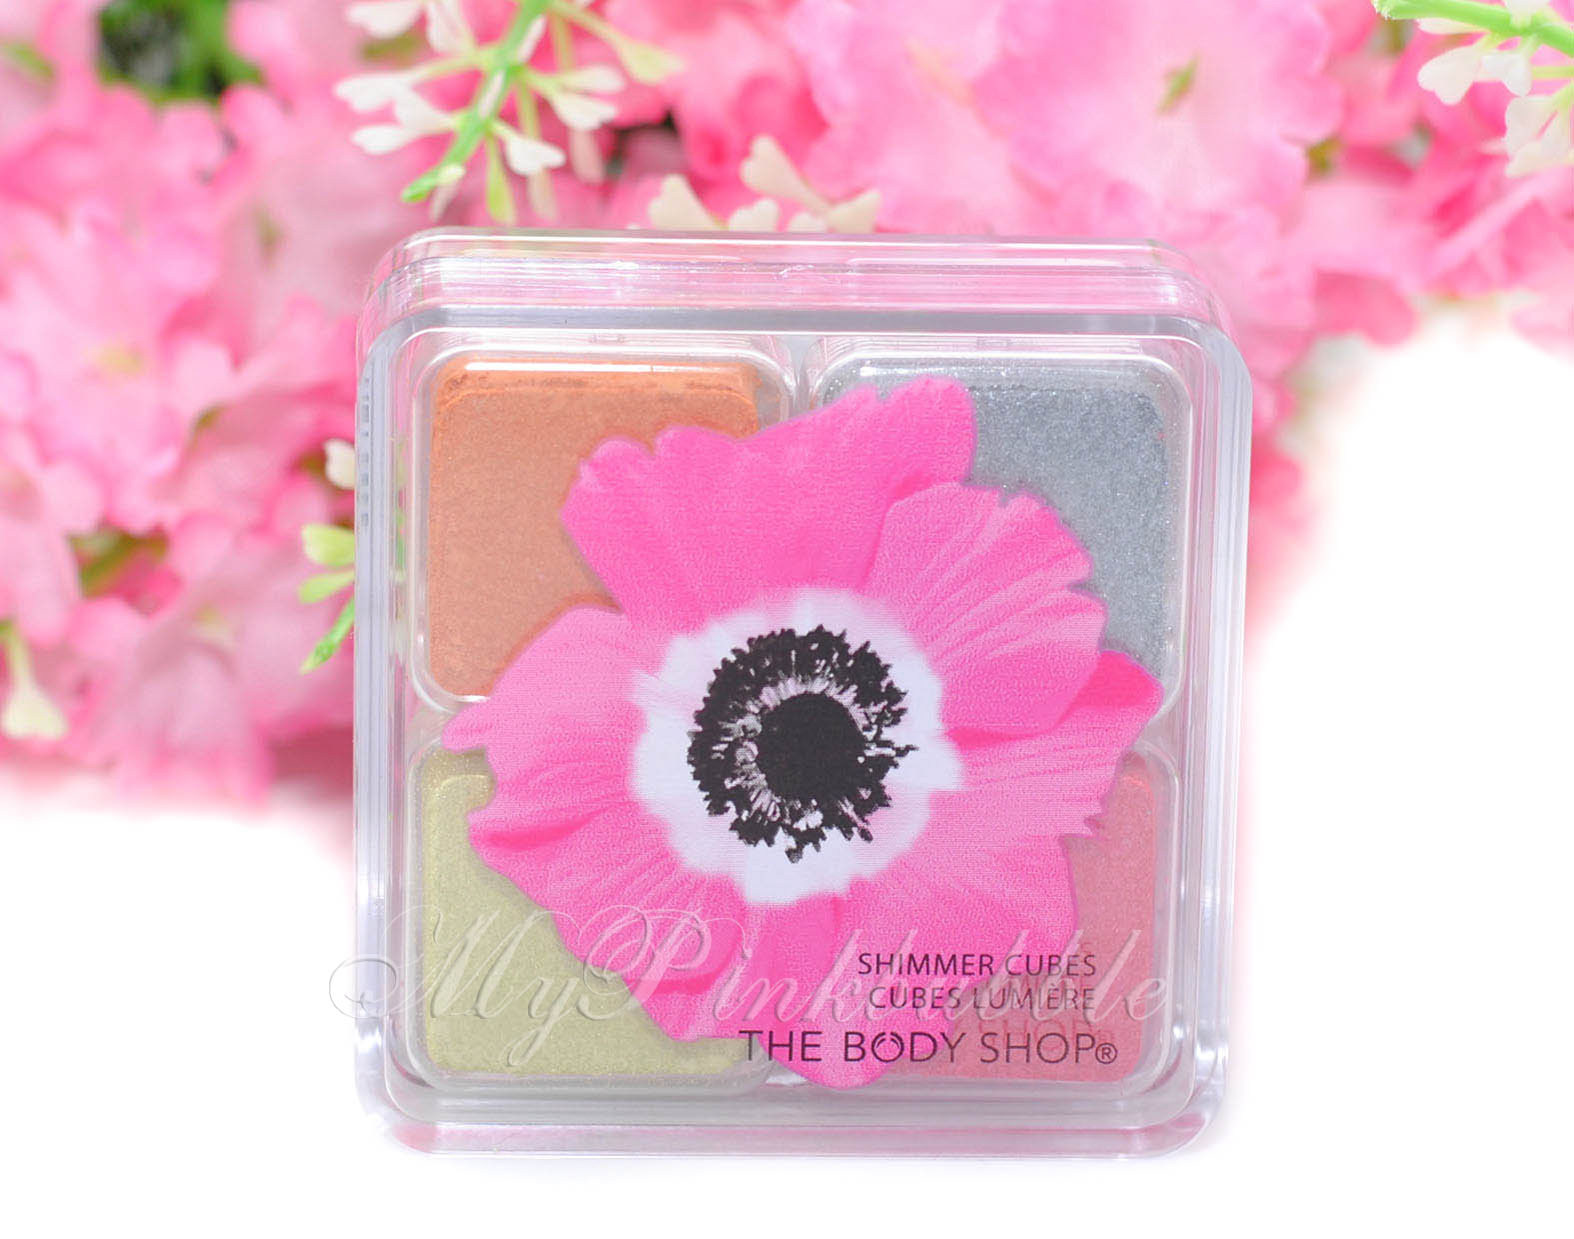 Body shop shimmer cubes pink poppy